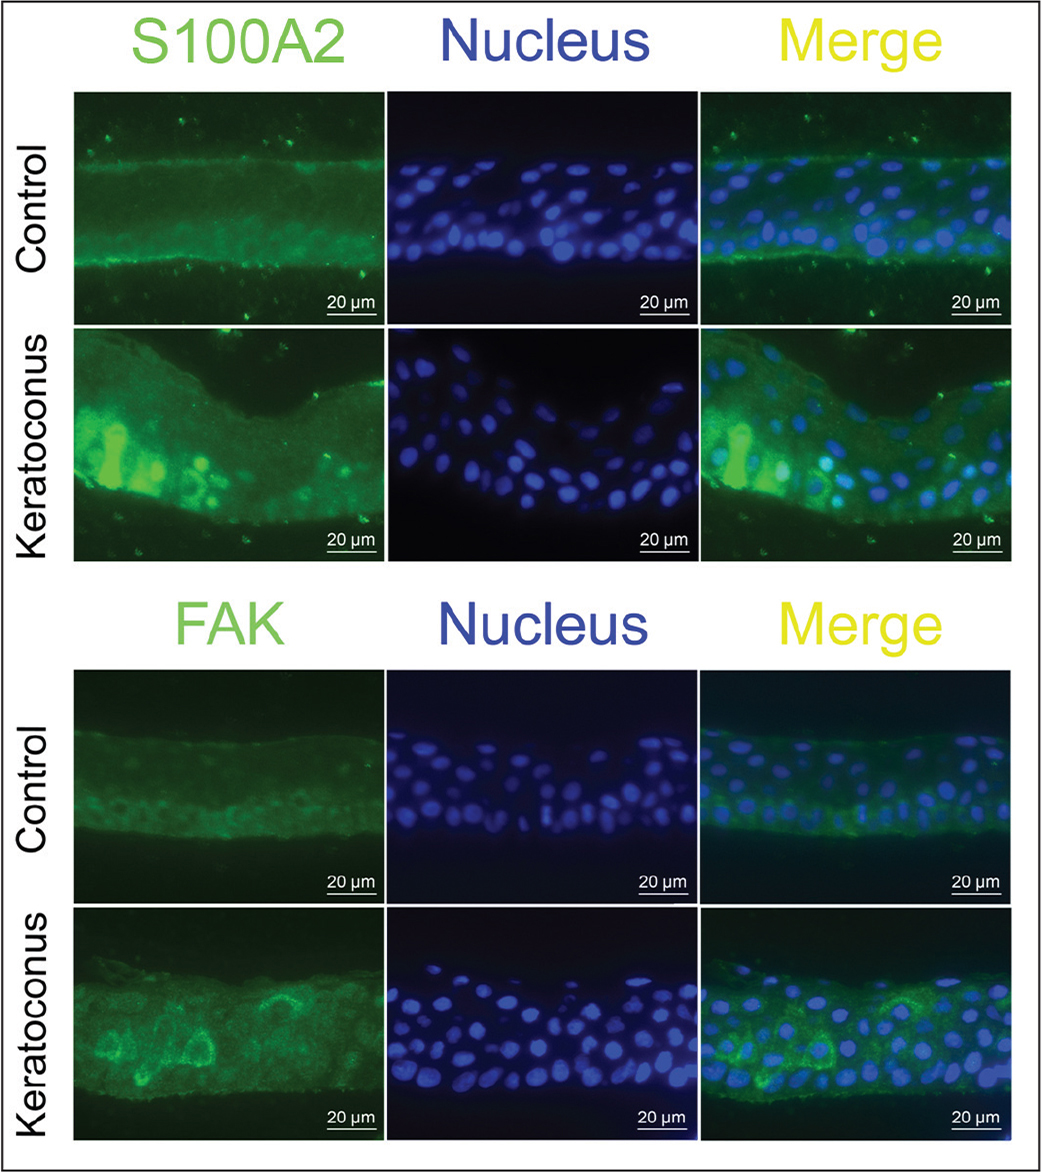 Immunofluorescence analysis of S100A2 and focal adhesion kinase (FAK) proteins in normal and keratoconic corneal epithelia. Higher expression of S100A2 protein was observed in the basal cell layer of keratoconic corneal epithelium compared to that of normal corneal epithelium, whereas FAK only showed slightly increased expression in the wing cell layer.